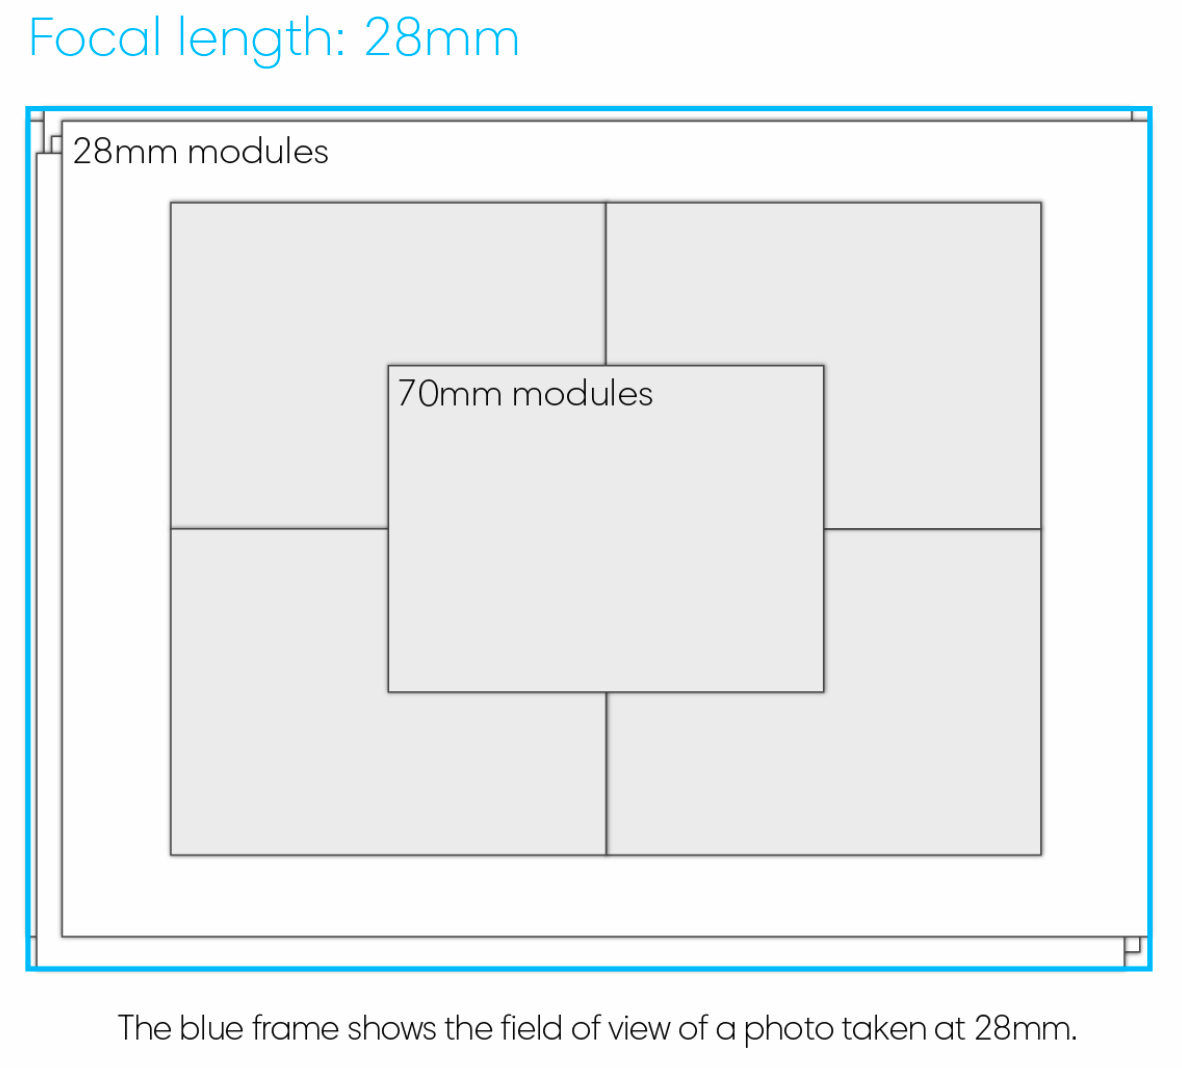 Source: Light (https://support.light .co/l16-photography/explained-variable-resolution)